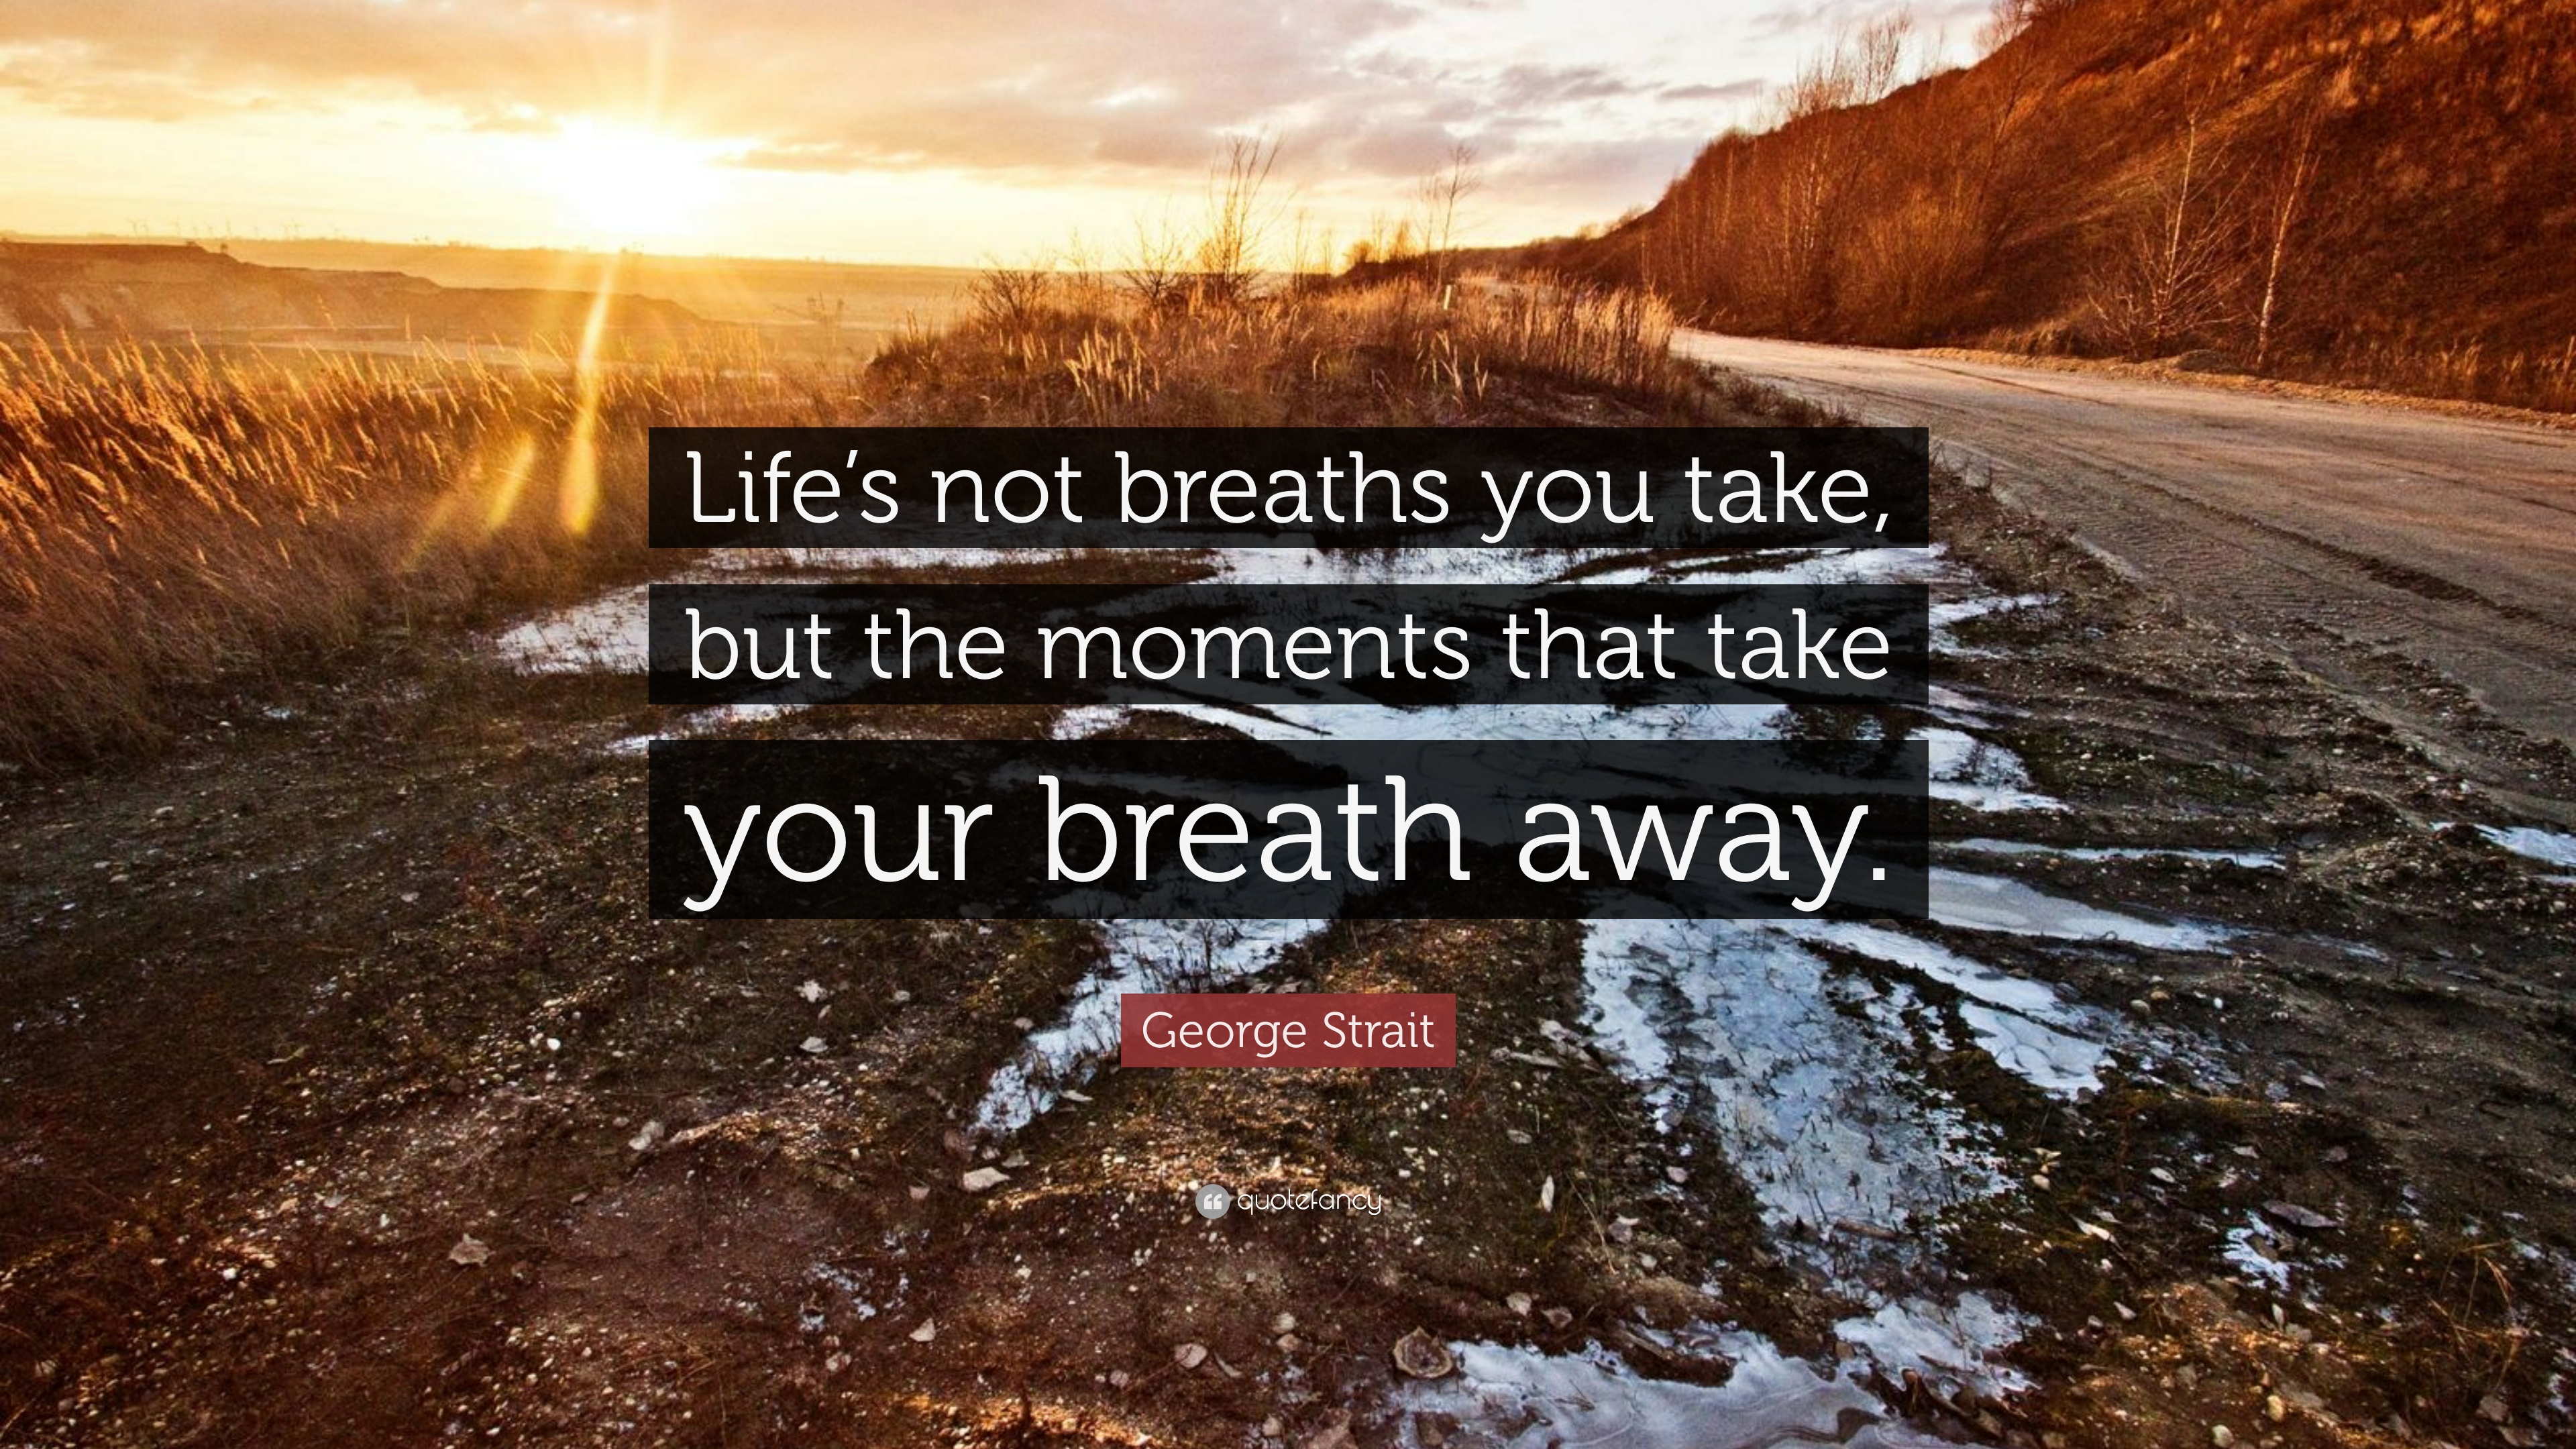 George Strait Quote Lifes Not Breaths You Take But The Moments